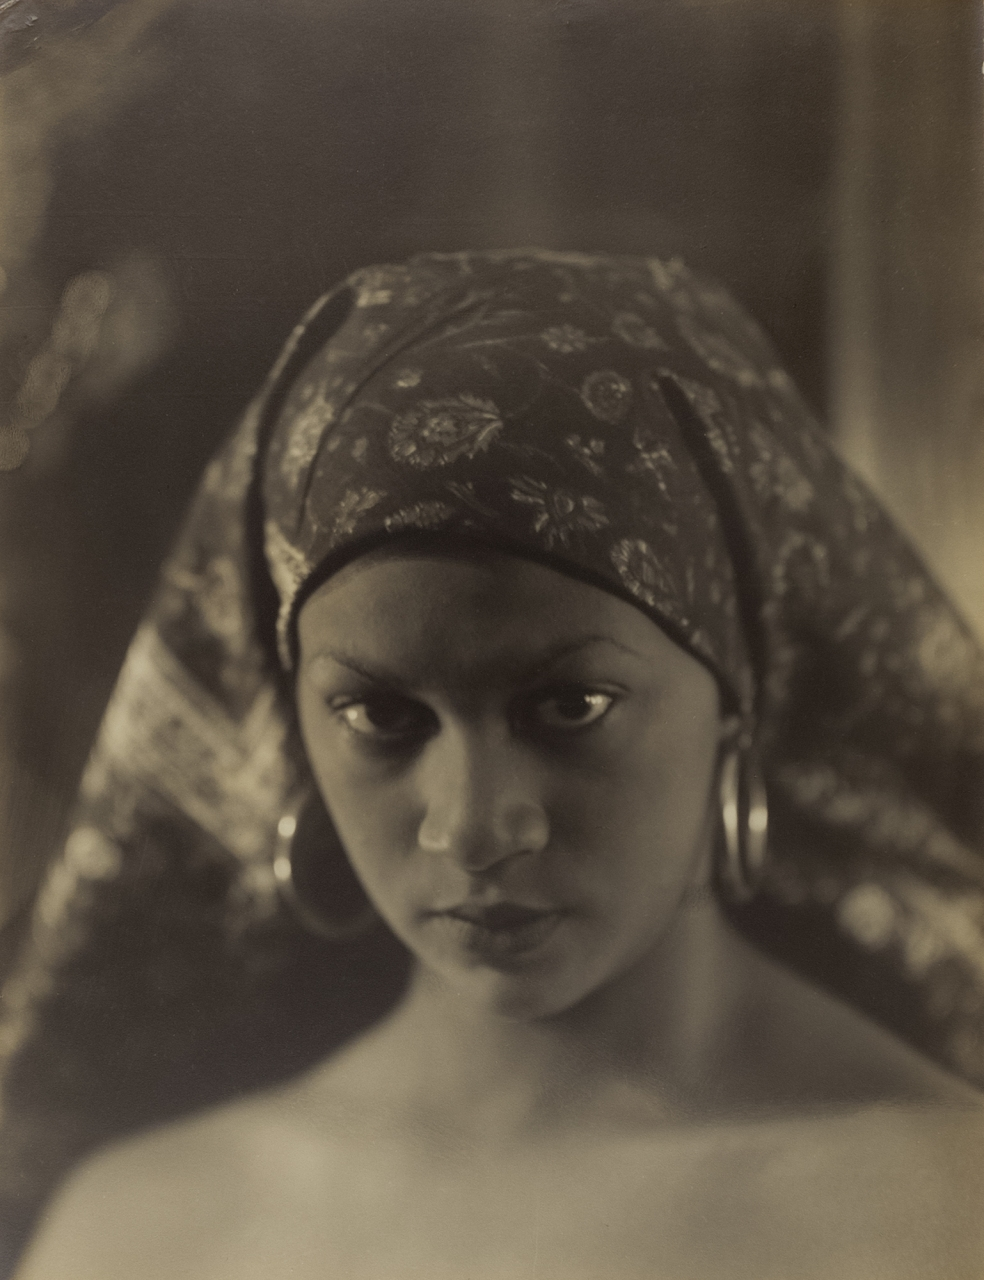 Photography Collection: Women in Focus, 1920s–1940sCurated by Julie CrooksApril 27–November 10. Art Gallery of Ontario, 317 Dundas St W - image: Violet Keene Perinchief, African Appeal, around 1935. Courtesy Stephen Bulger Gallery © The Estate of Violet Keene Perinchief/Stephen Bulger Gallery.